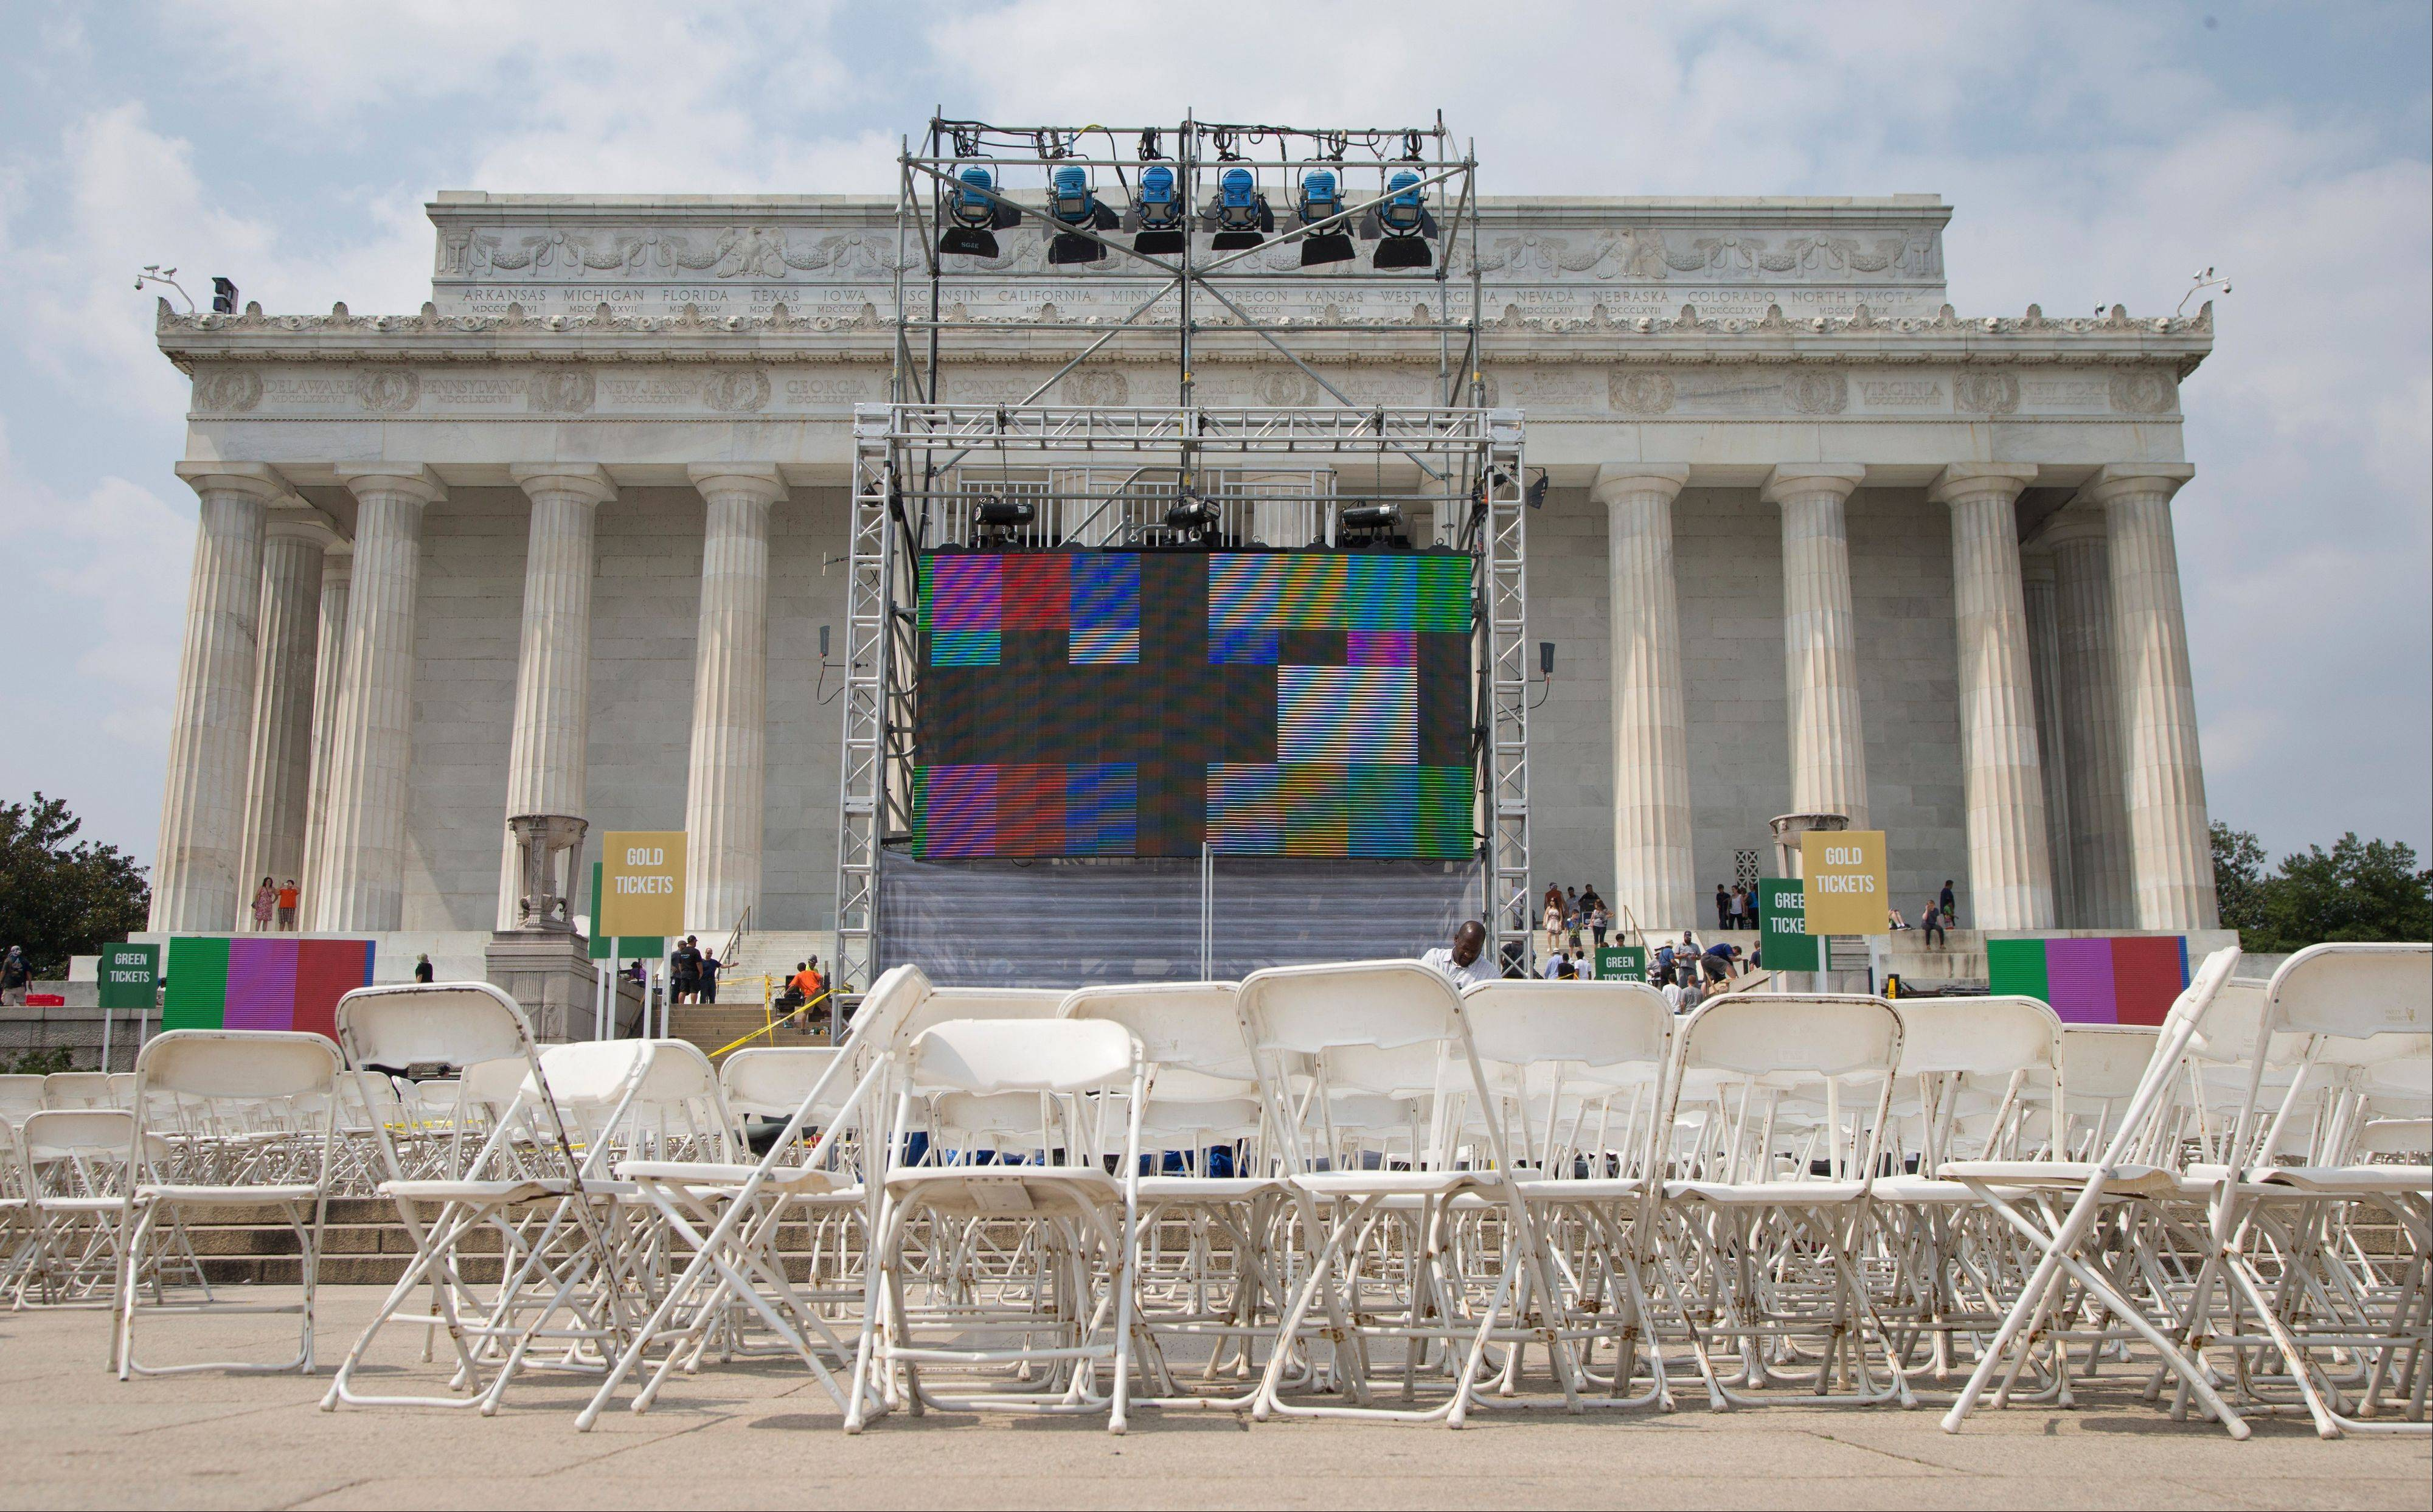 Chairs, metal risers and video screens are set up Tuesday at the Lincoln Memorial in Washington, in preparation for the 50th anniversary of the March On Washington celebrations that will be held Wednesday. Barack Obama, who is going to speak, was 2 years old and growing up in Hawaii when King delivered his �I Have a Dream� speech from the steps of the Lincoln Memorial. Fifty years later, the nation�s first black president will stand as the most high-profile example of the racial progress King espoused, delivering remarks at a nationwide commemoration of the 1963 demonstration for jobs, economic justice and racial equality.